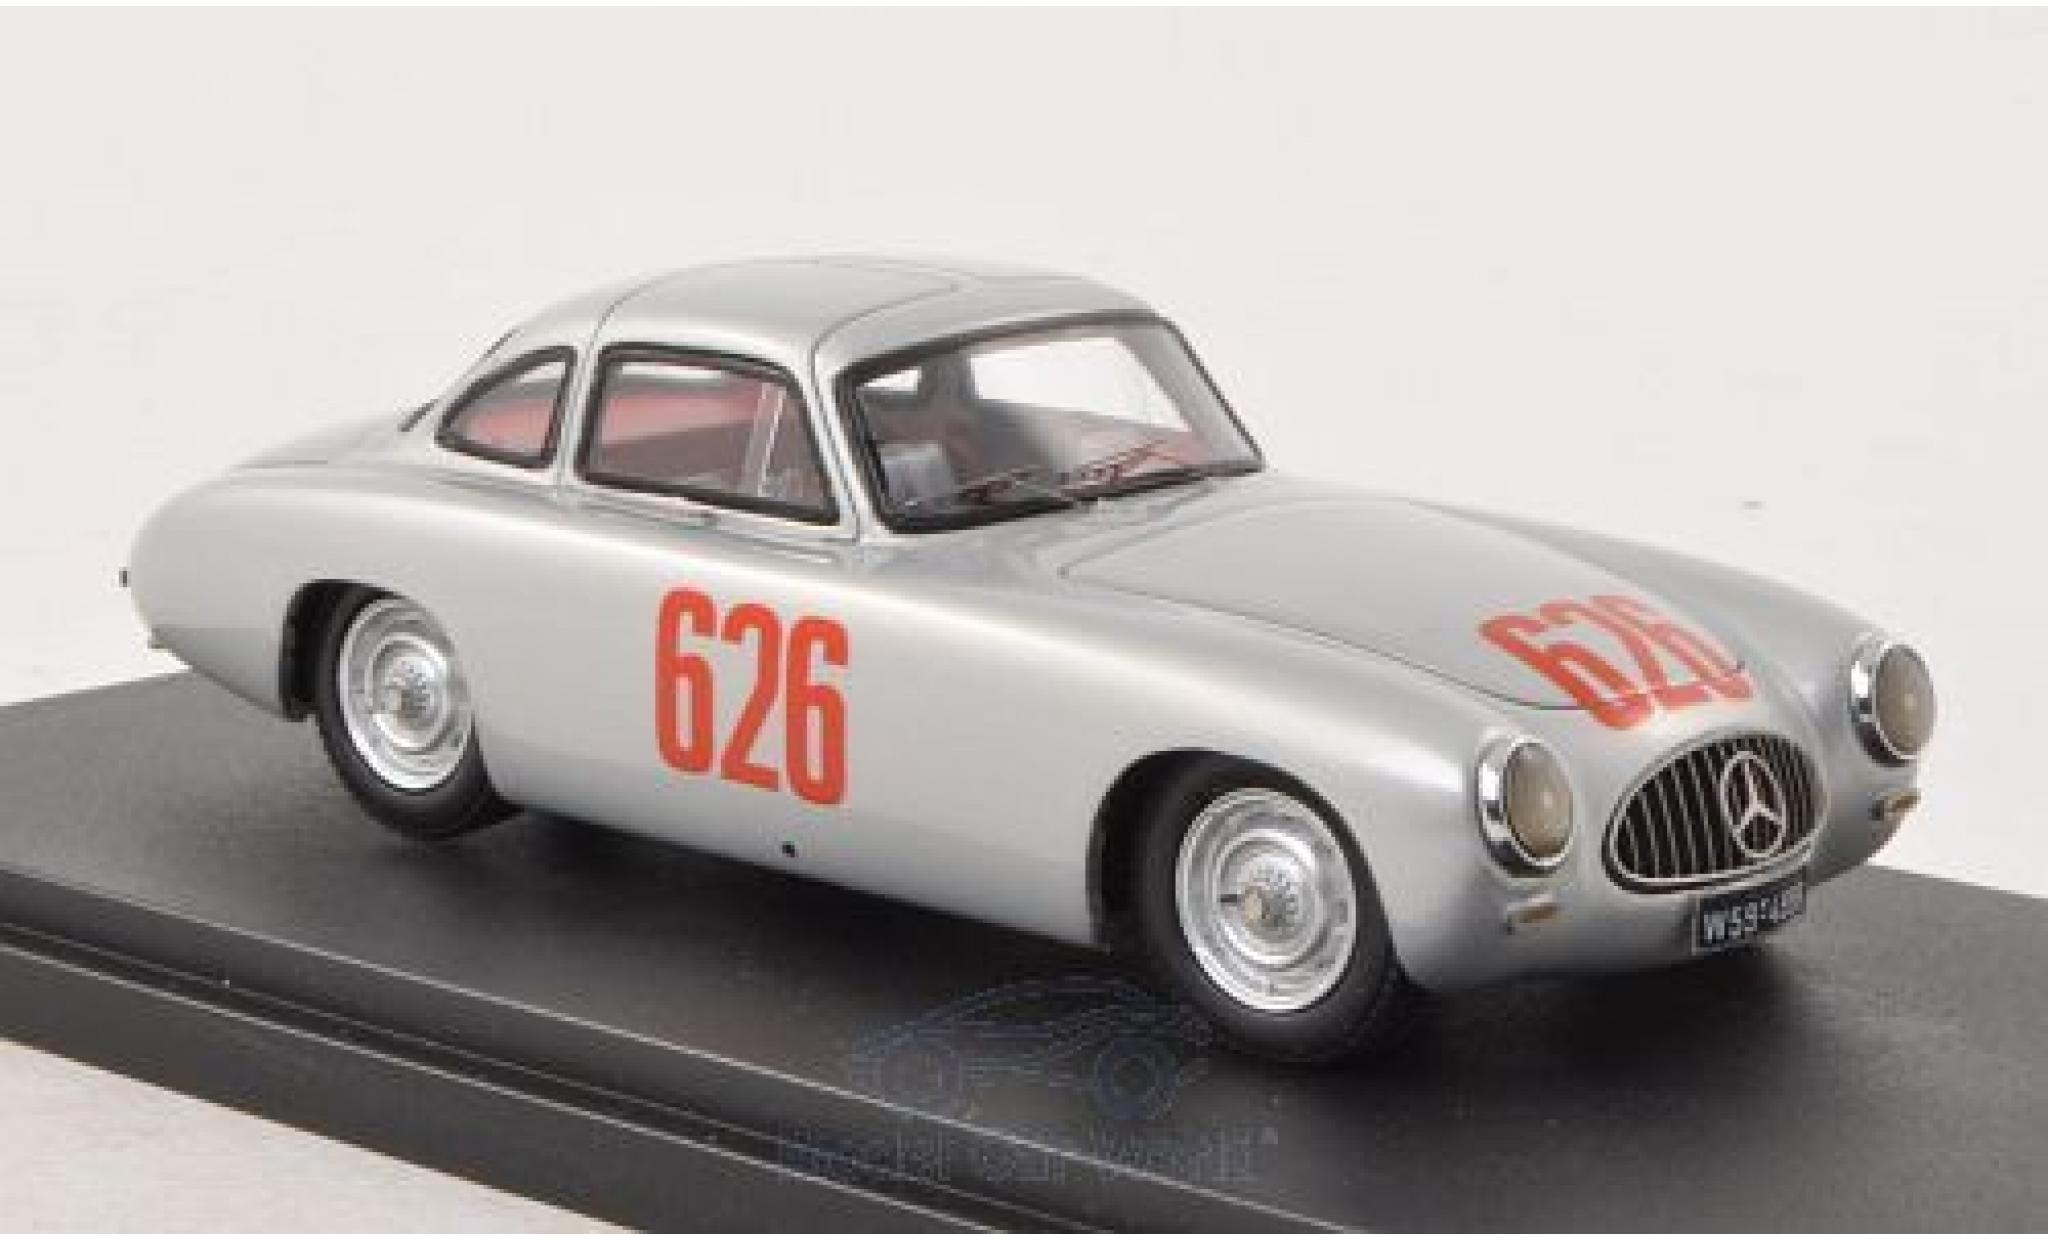 Mercedes 300 SL 1/43 Contact SL No.626 Mille Miglia 1952